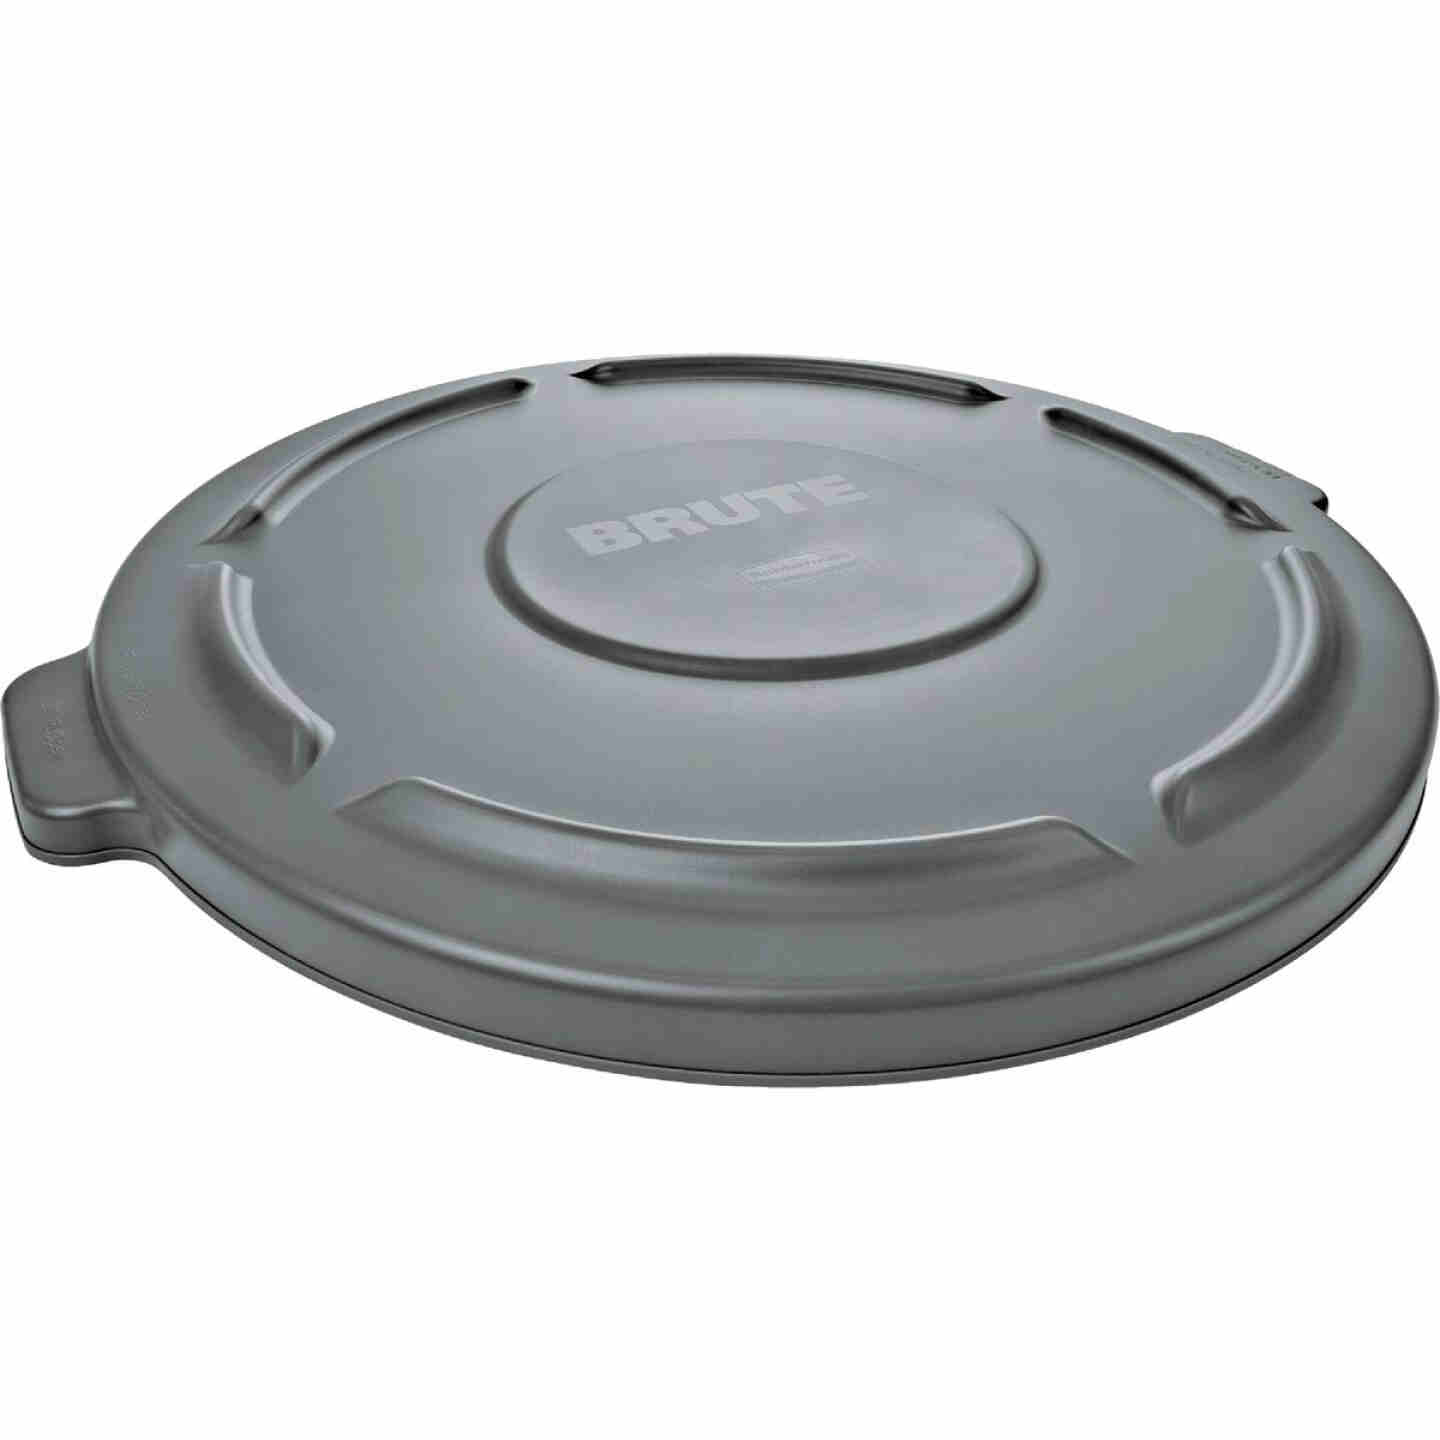 Rubbermaid Commercial Brute Gray Trash Can Lid for 10 Gal. Trash Can Image 1